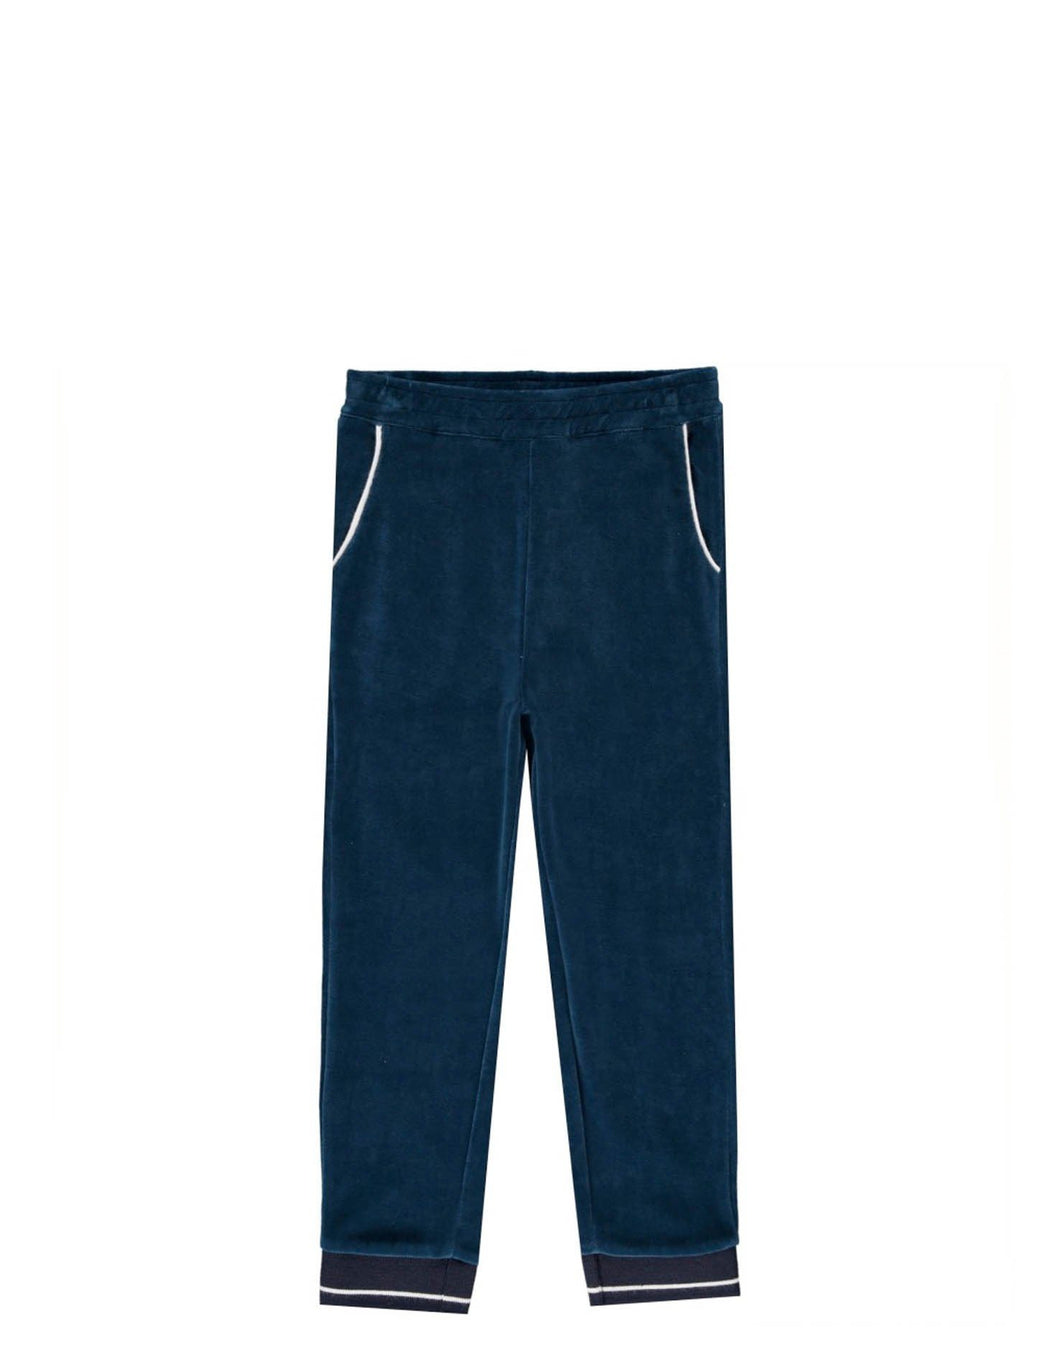 VELVET BLUE JOGGINGS